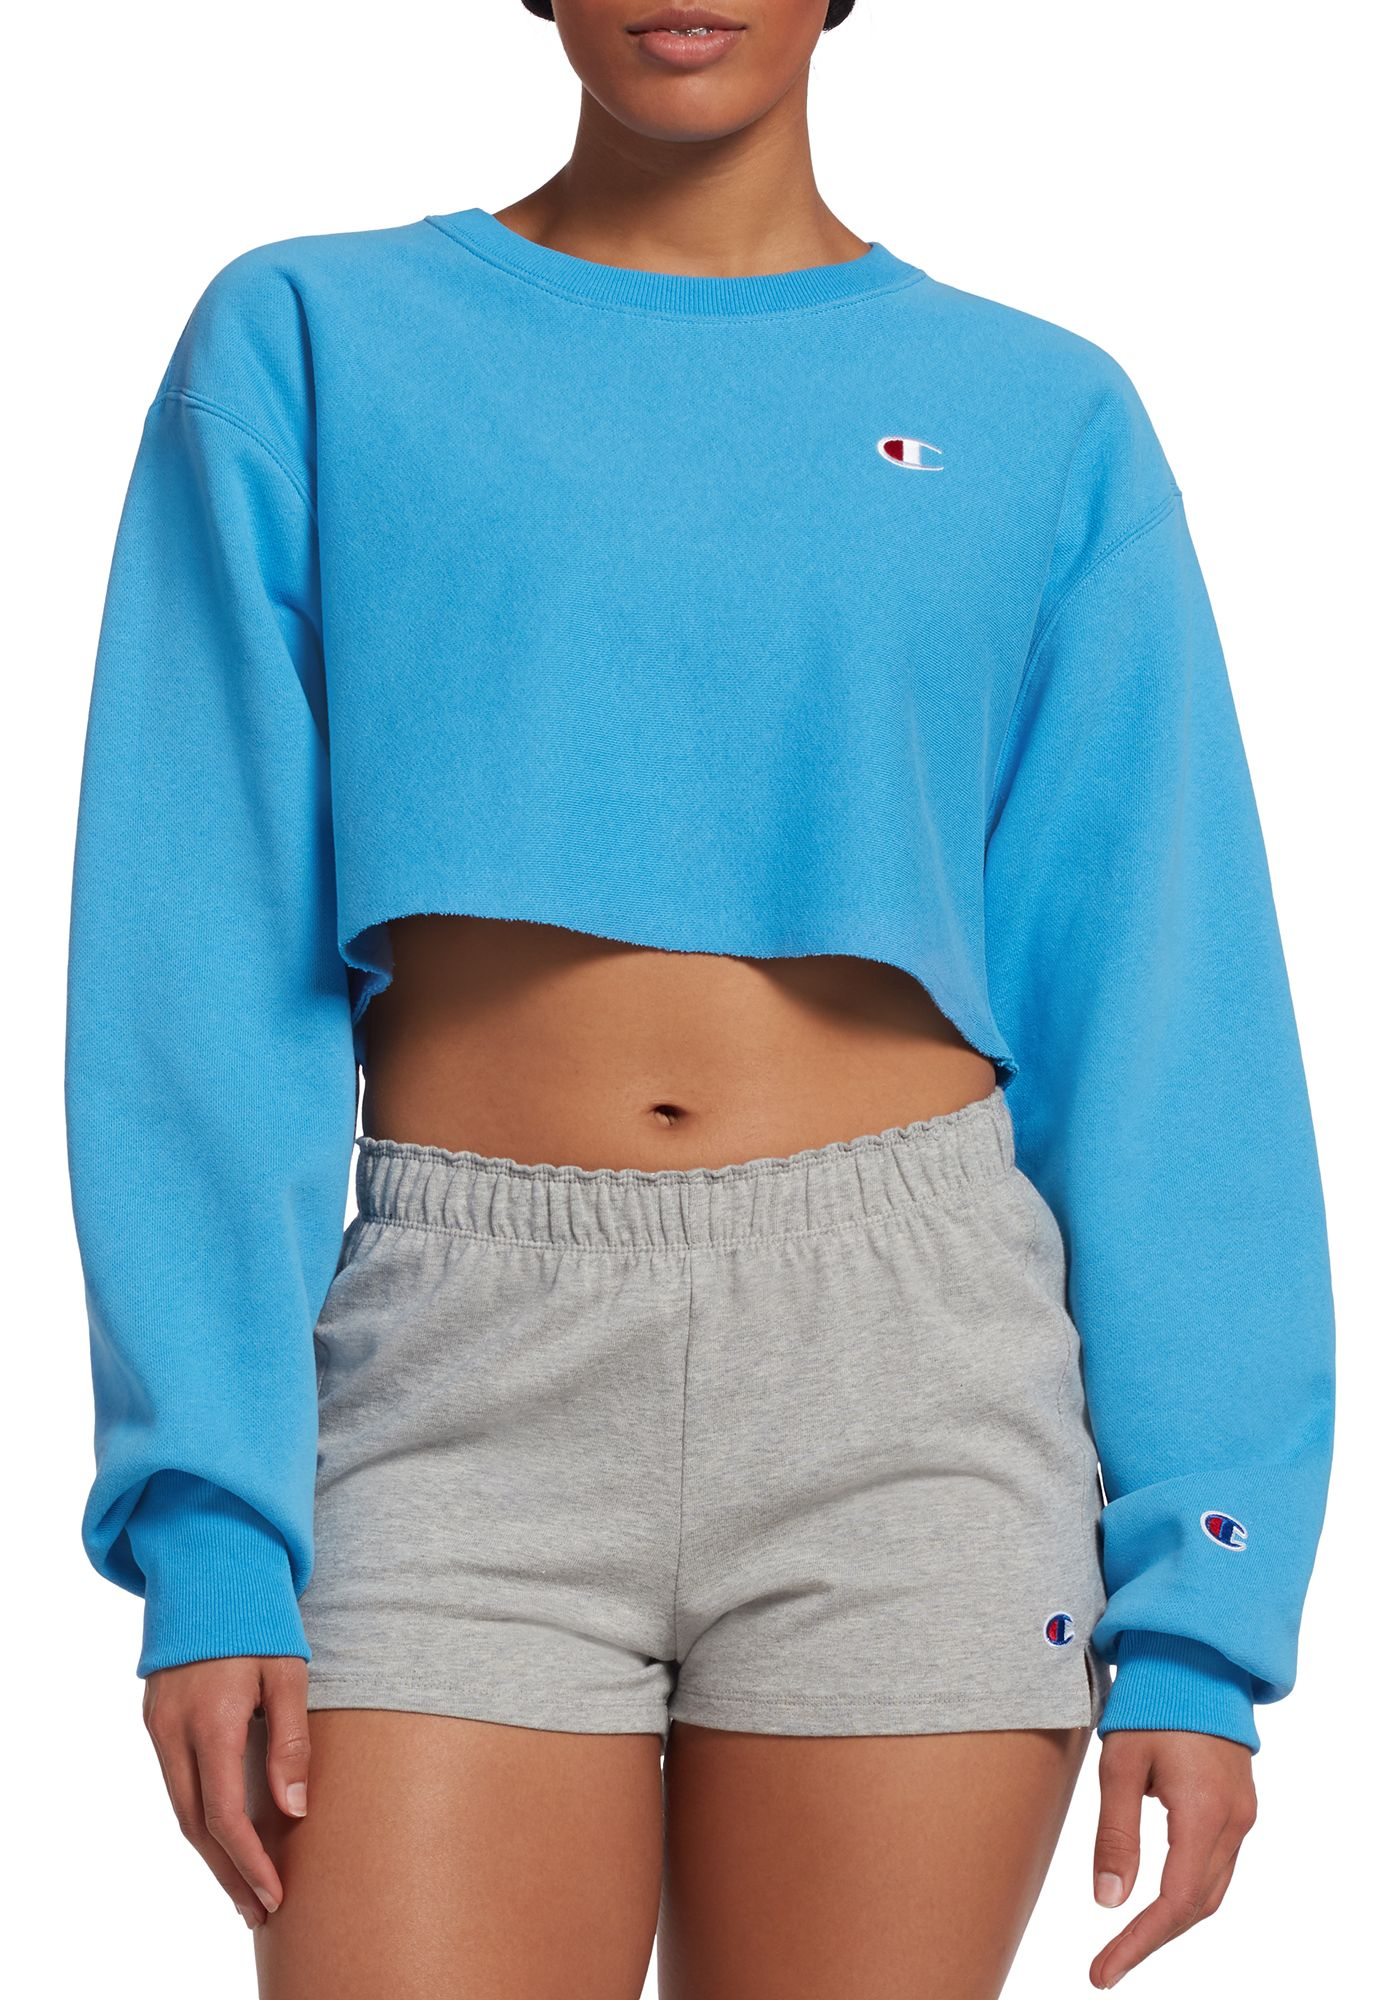 Champion Women's Cropped Cut-Off Crew Top